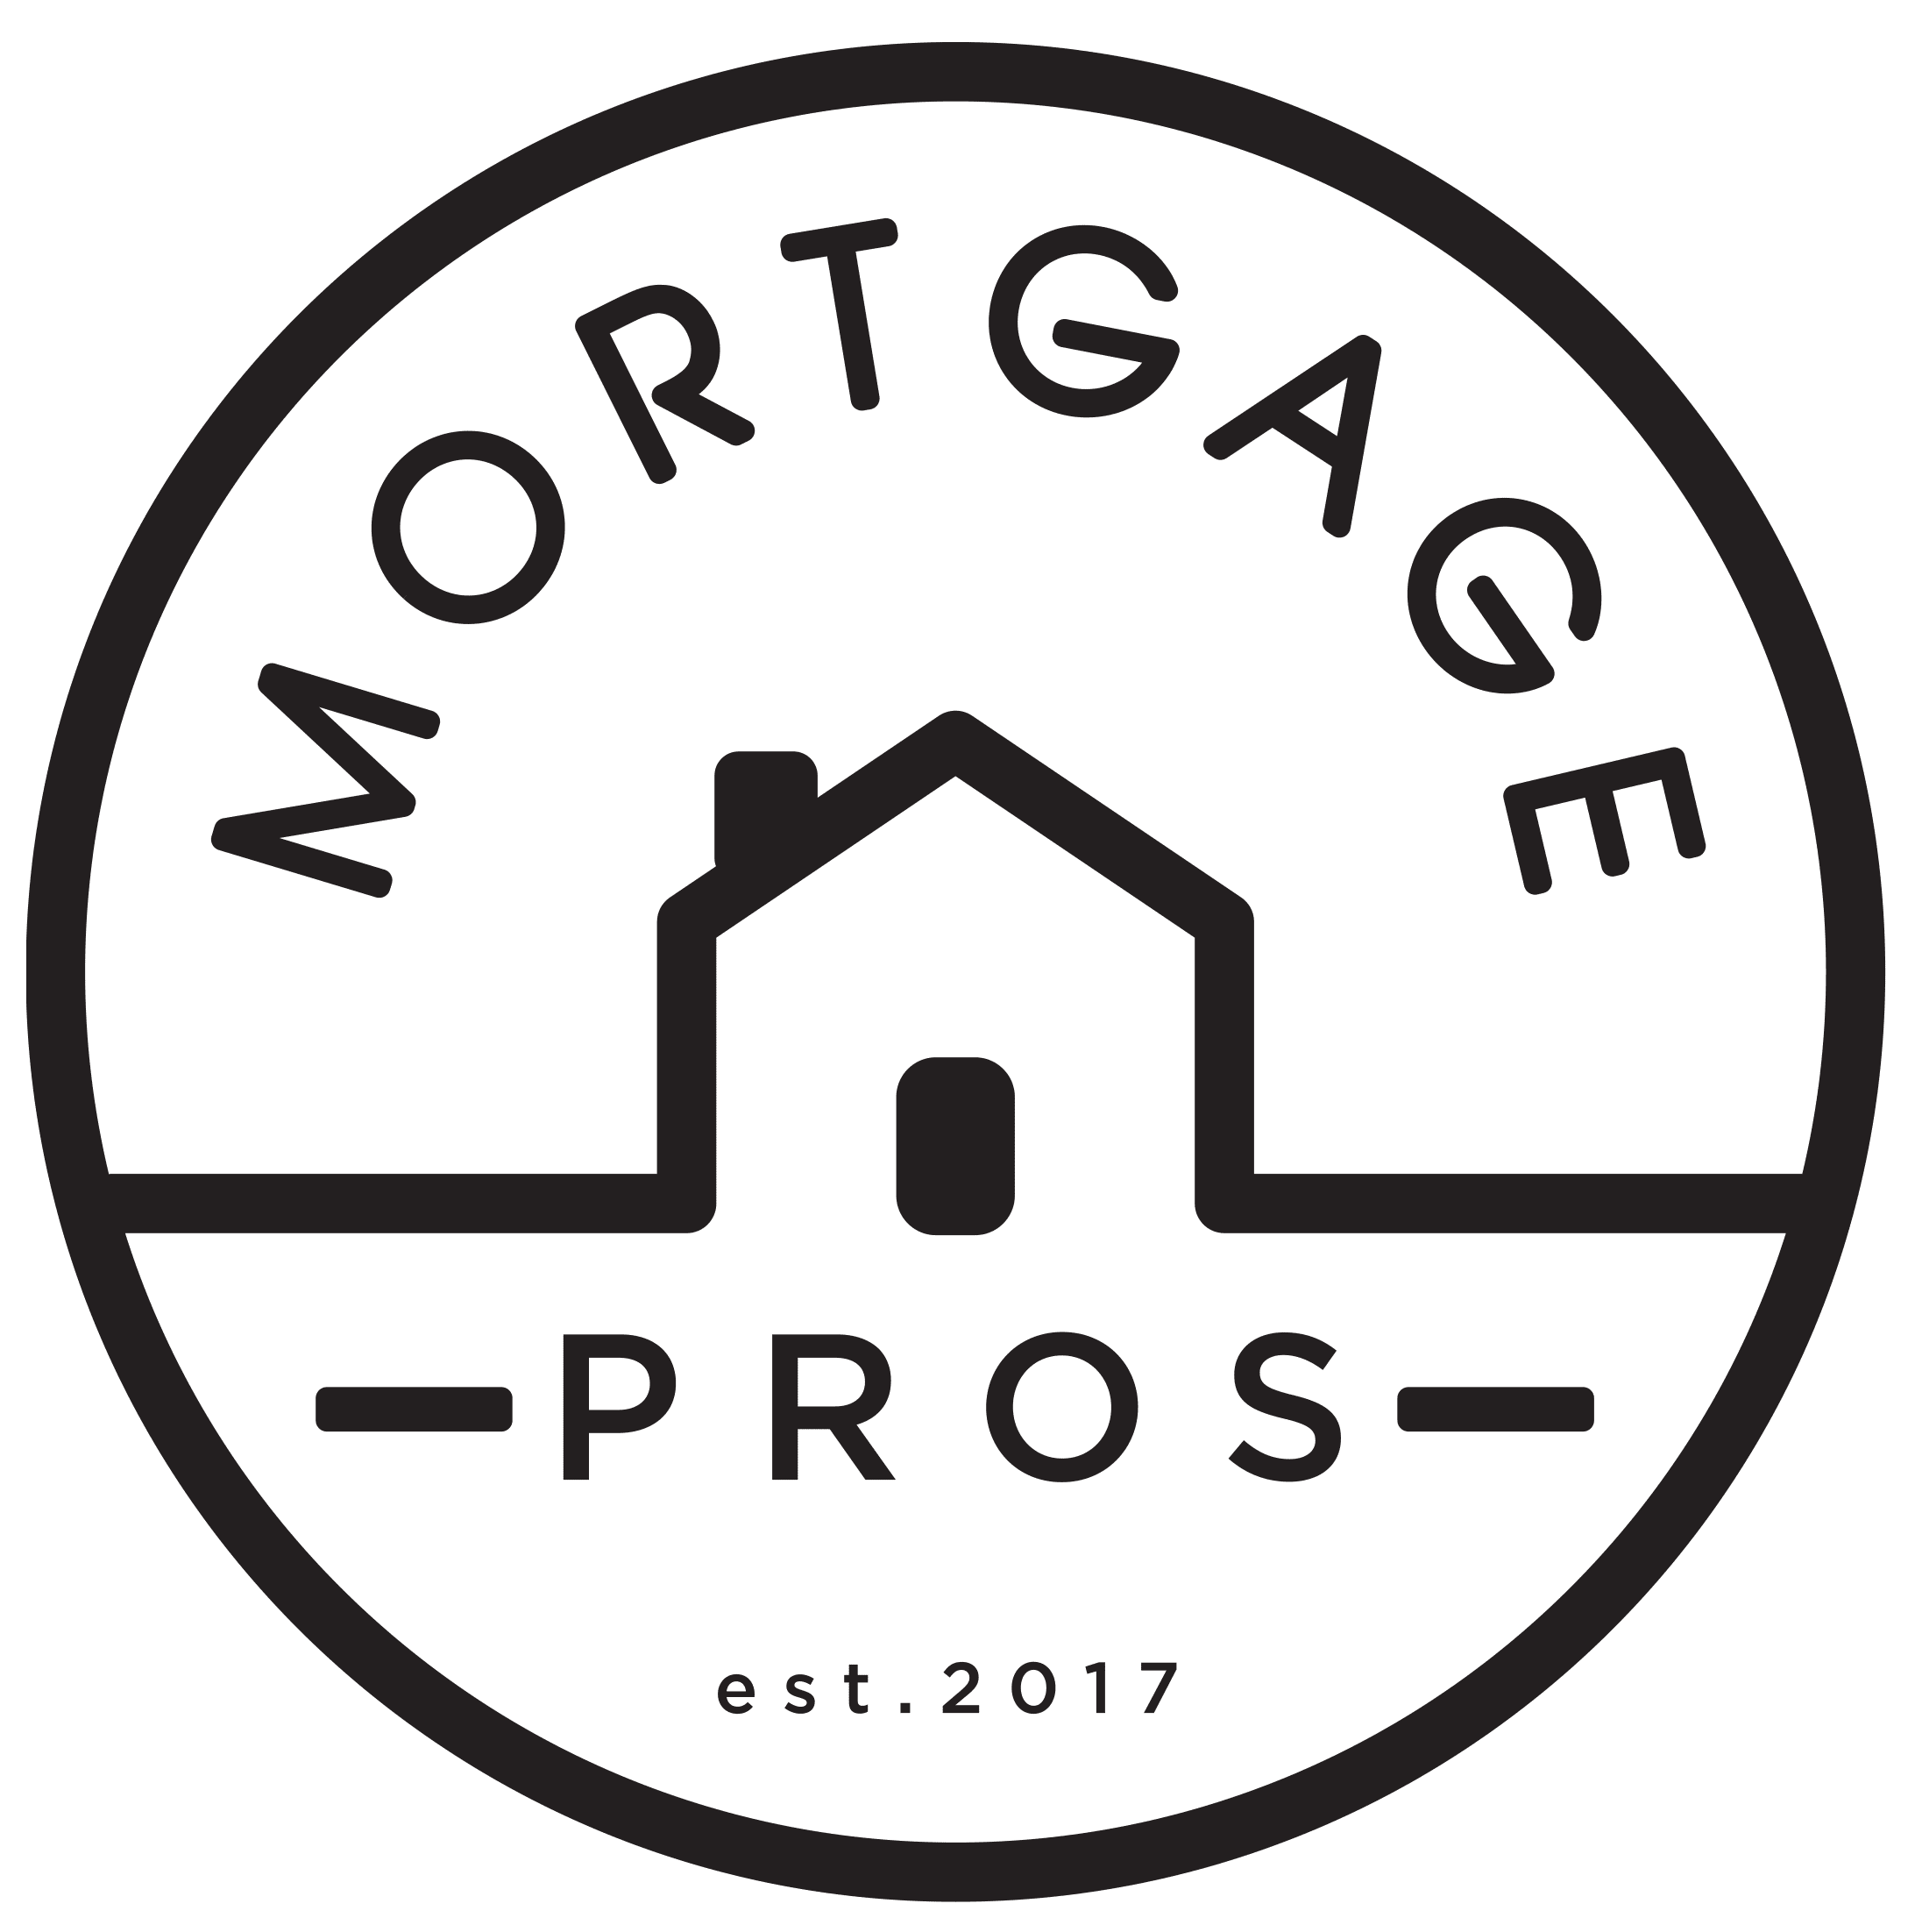 Mortgage Pros - we are RGV